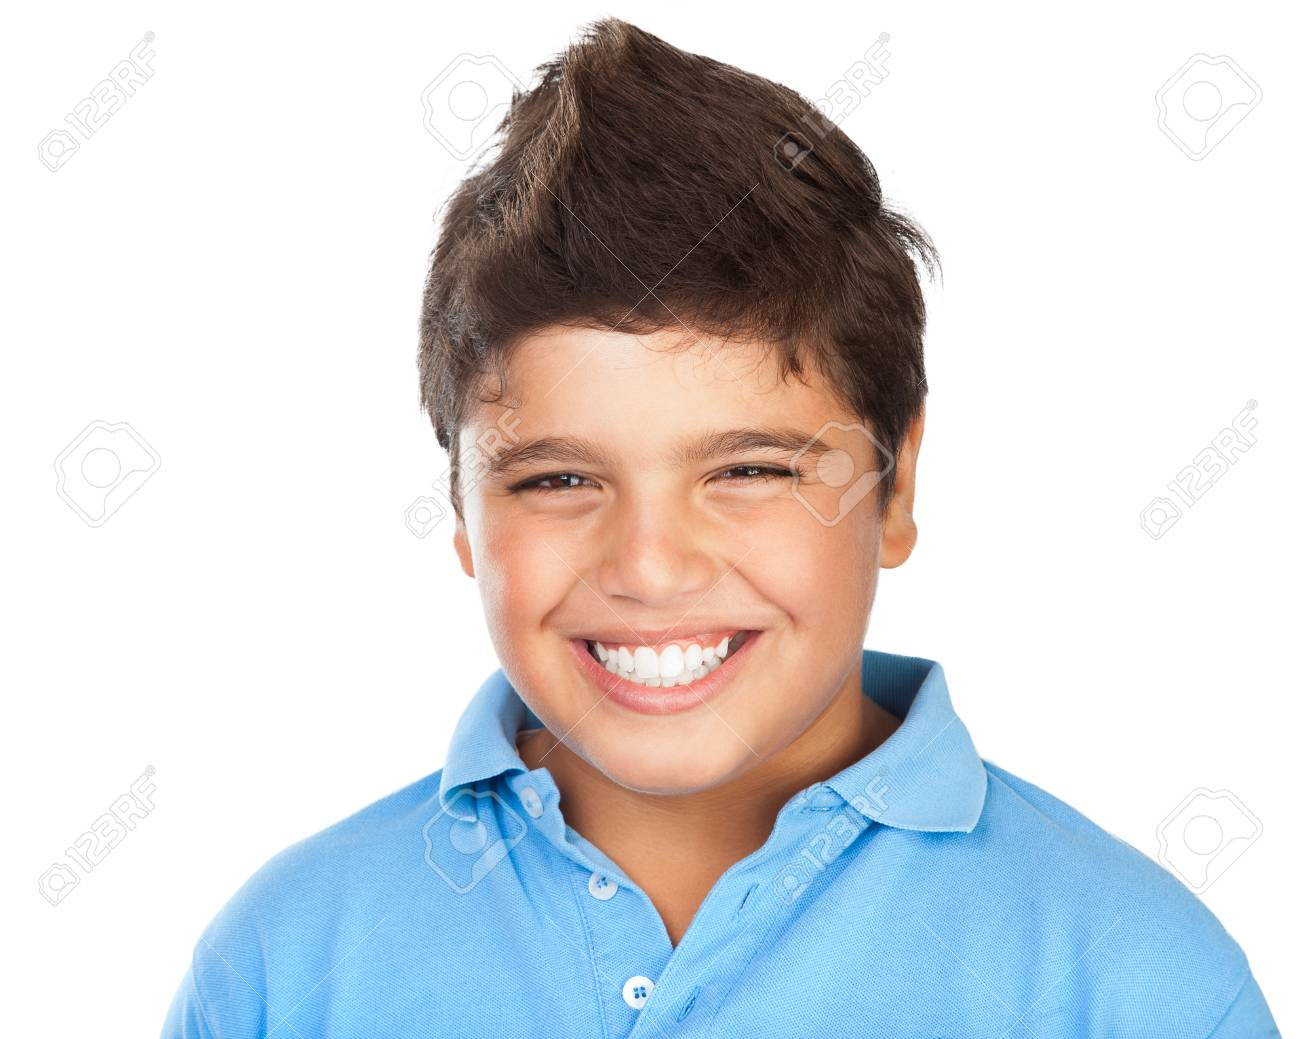 Portrait of a cheerful smiling boy isolated on white background, teenage model posing in the studio, happy facial expression, perfect toothy smile - 52523423